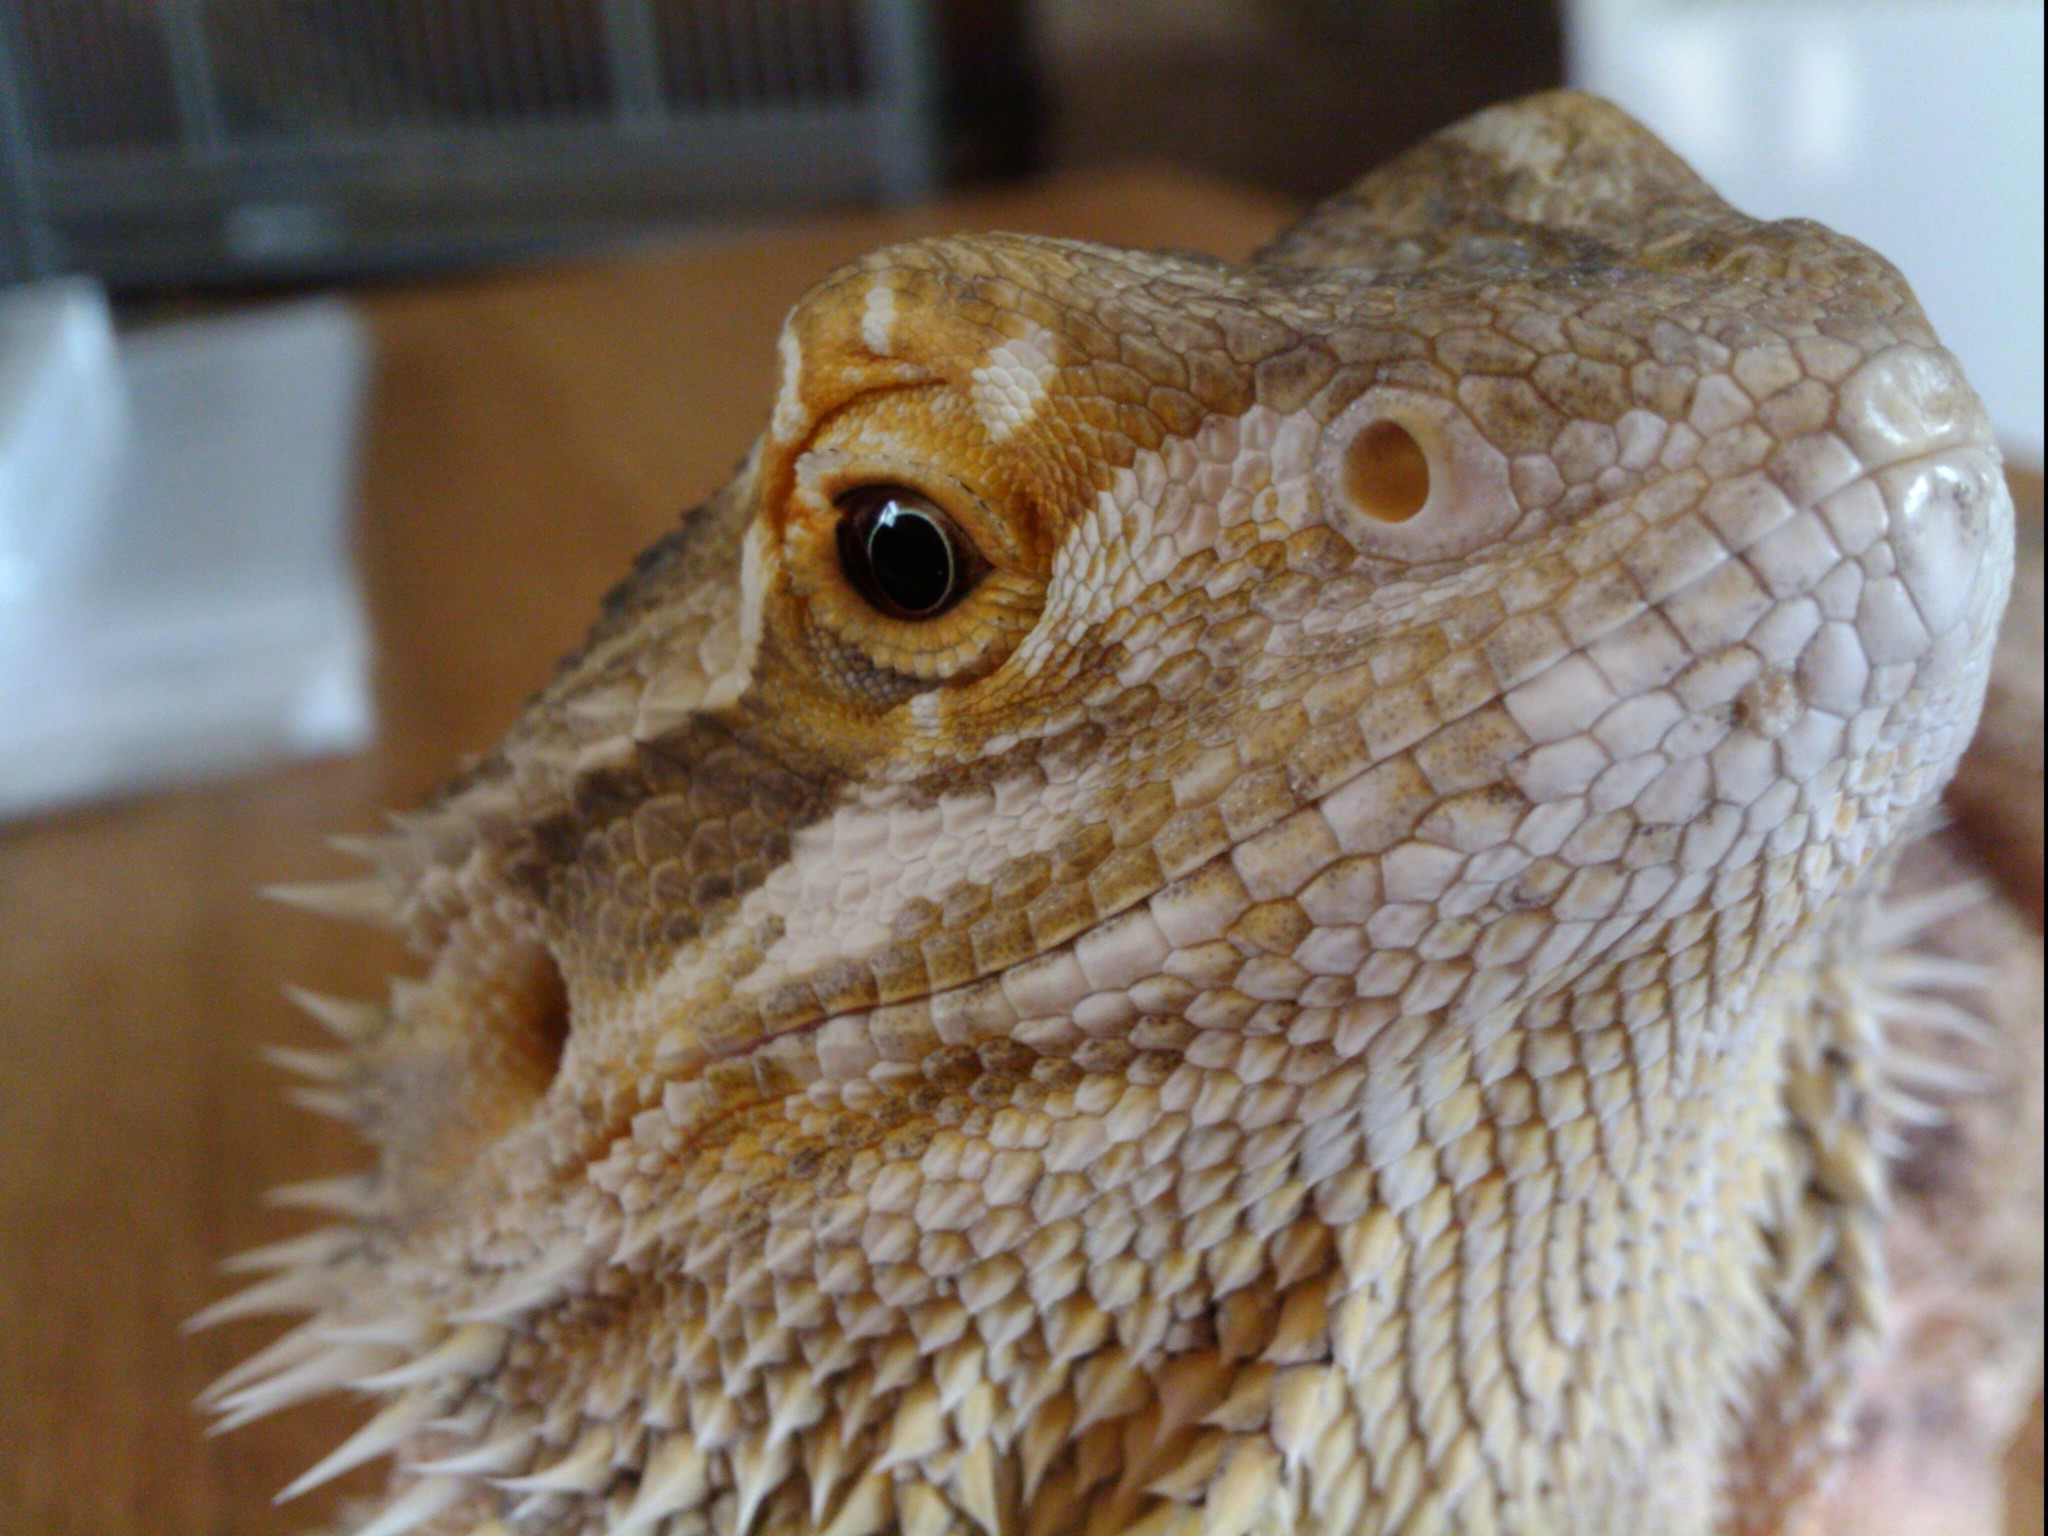 Bearded Dragon Will They Make My Dog Sick